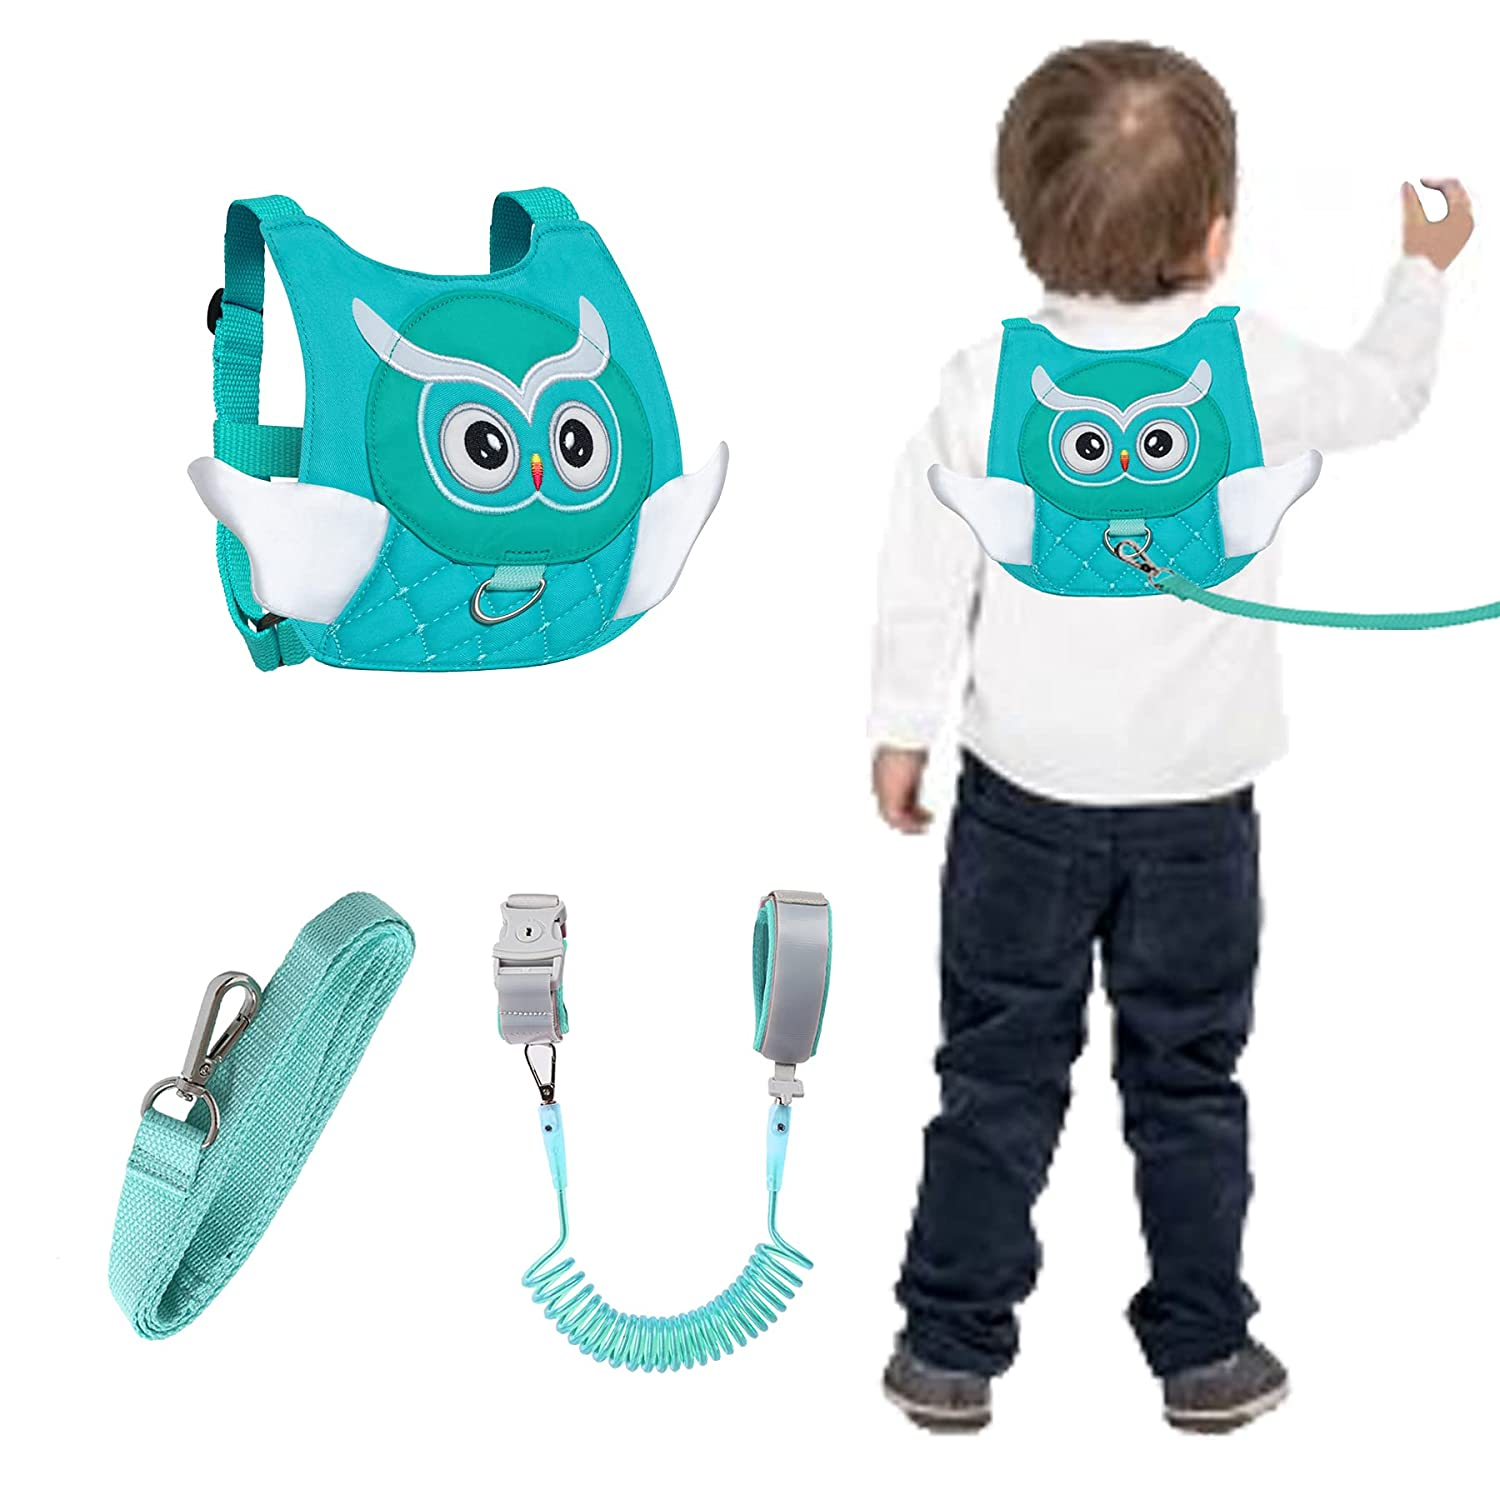 Owl Toddlers Safety Harness with Leashes Kids Anti Lost Wrist Leash Link Wristlets (Owl Green)